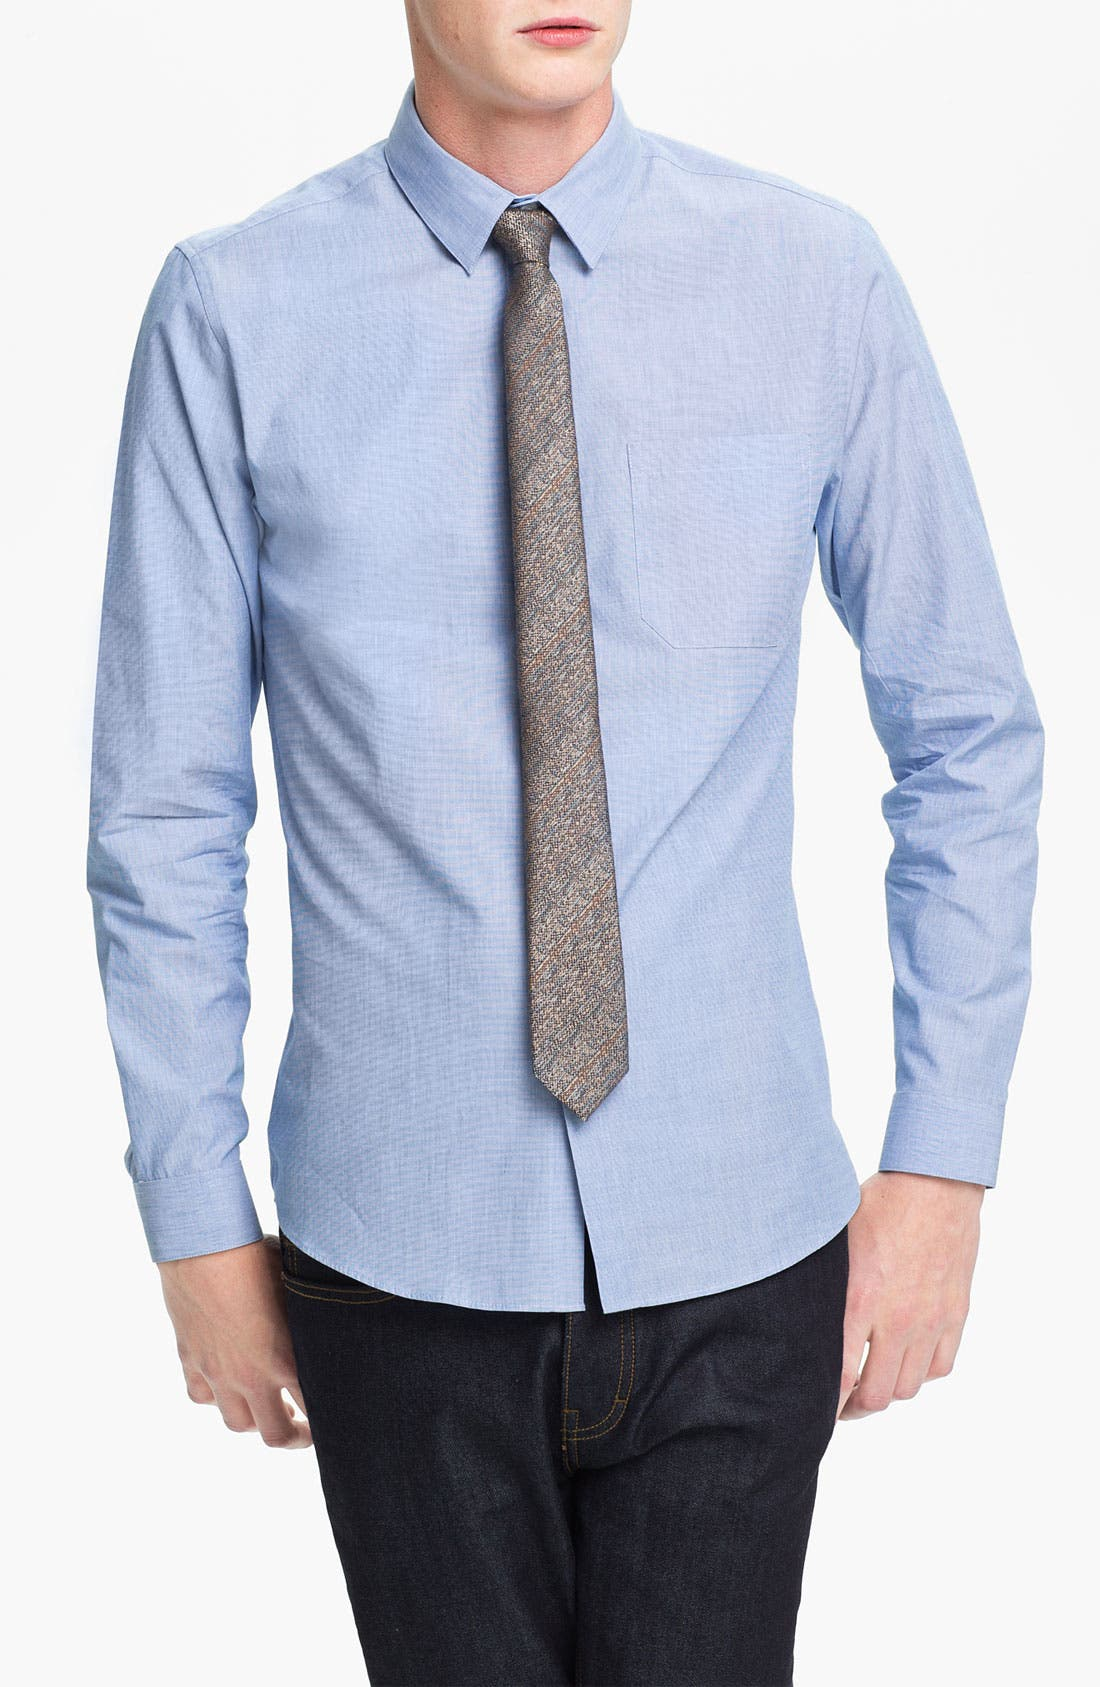 Alternate Image 1 Selected - Topman Slim Fit End-on-End Woven Dress Shirt